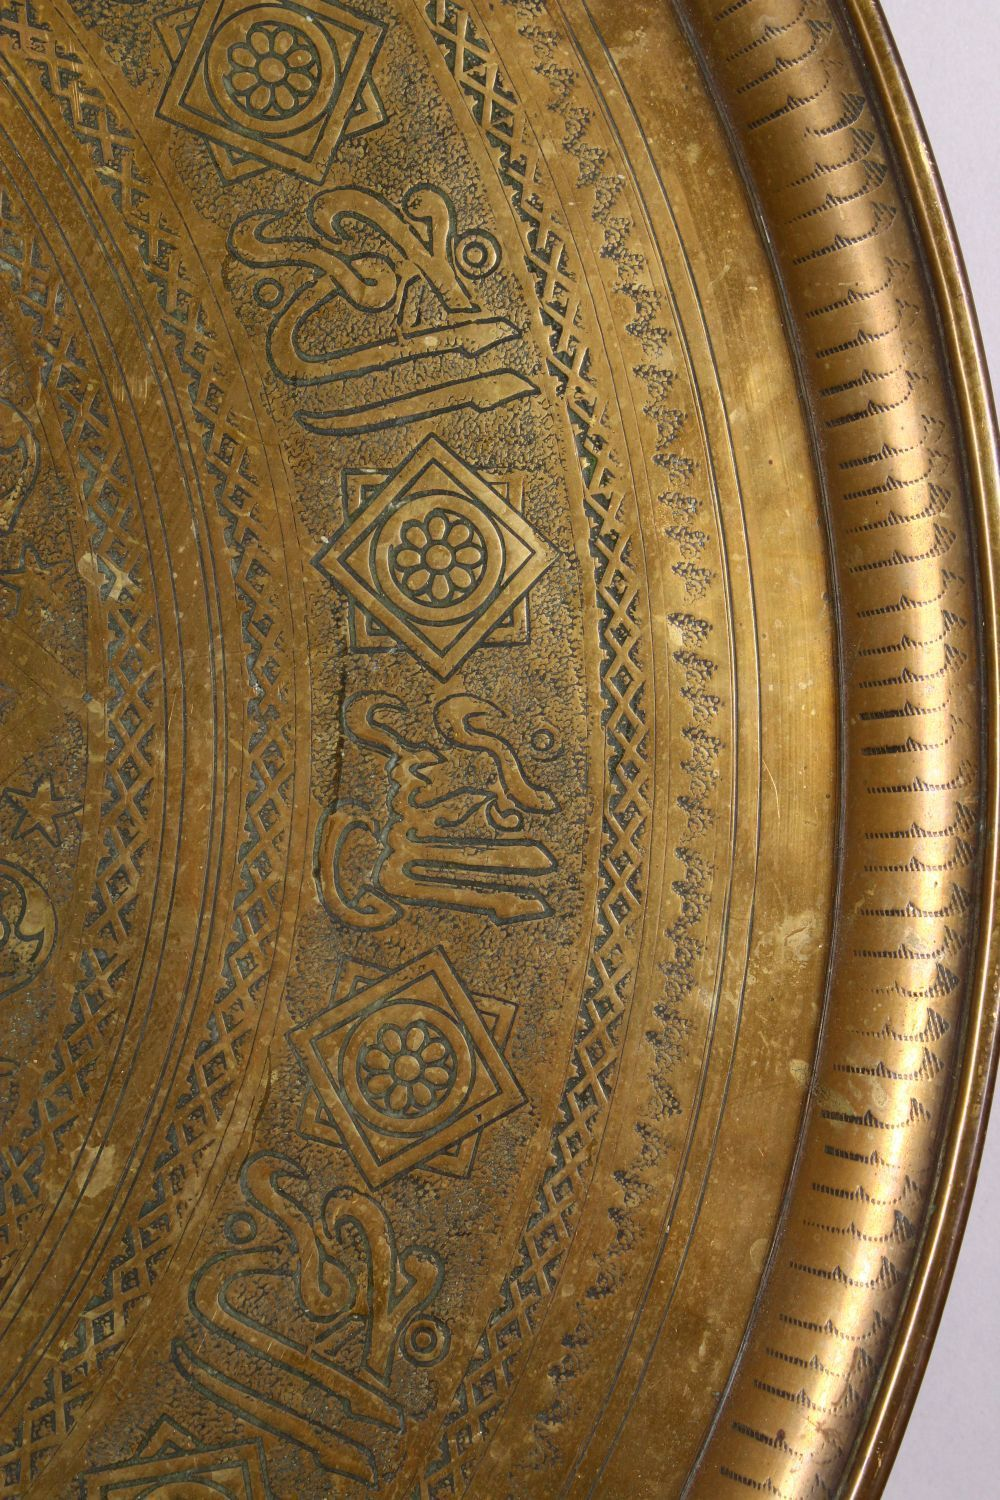 A LARGE 19TH CENTURY EGYPTIAN BRASS CHARGER / TRAY, with carved bands of calligraphy and motif - Image 6 of 7